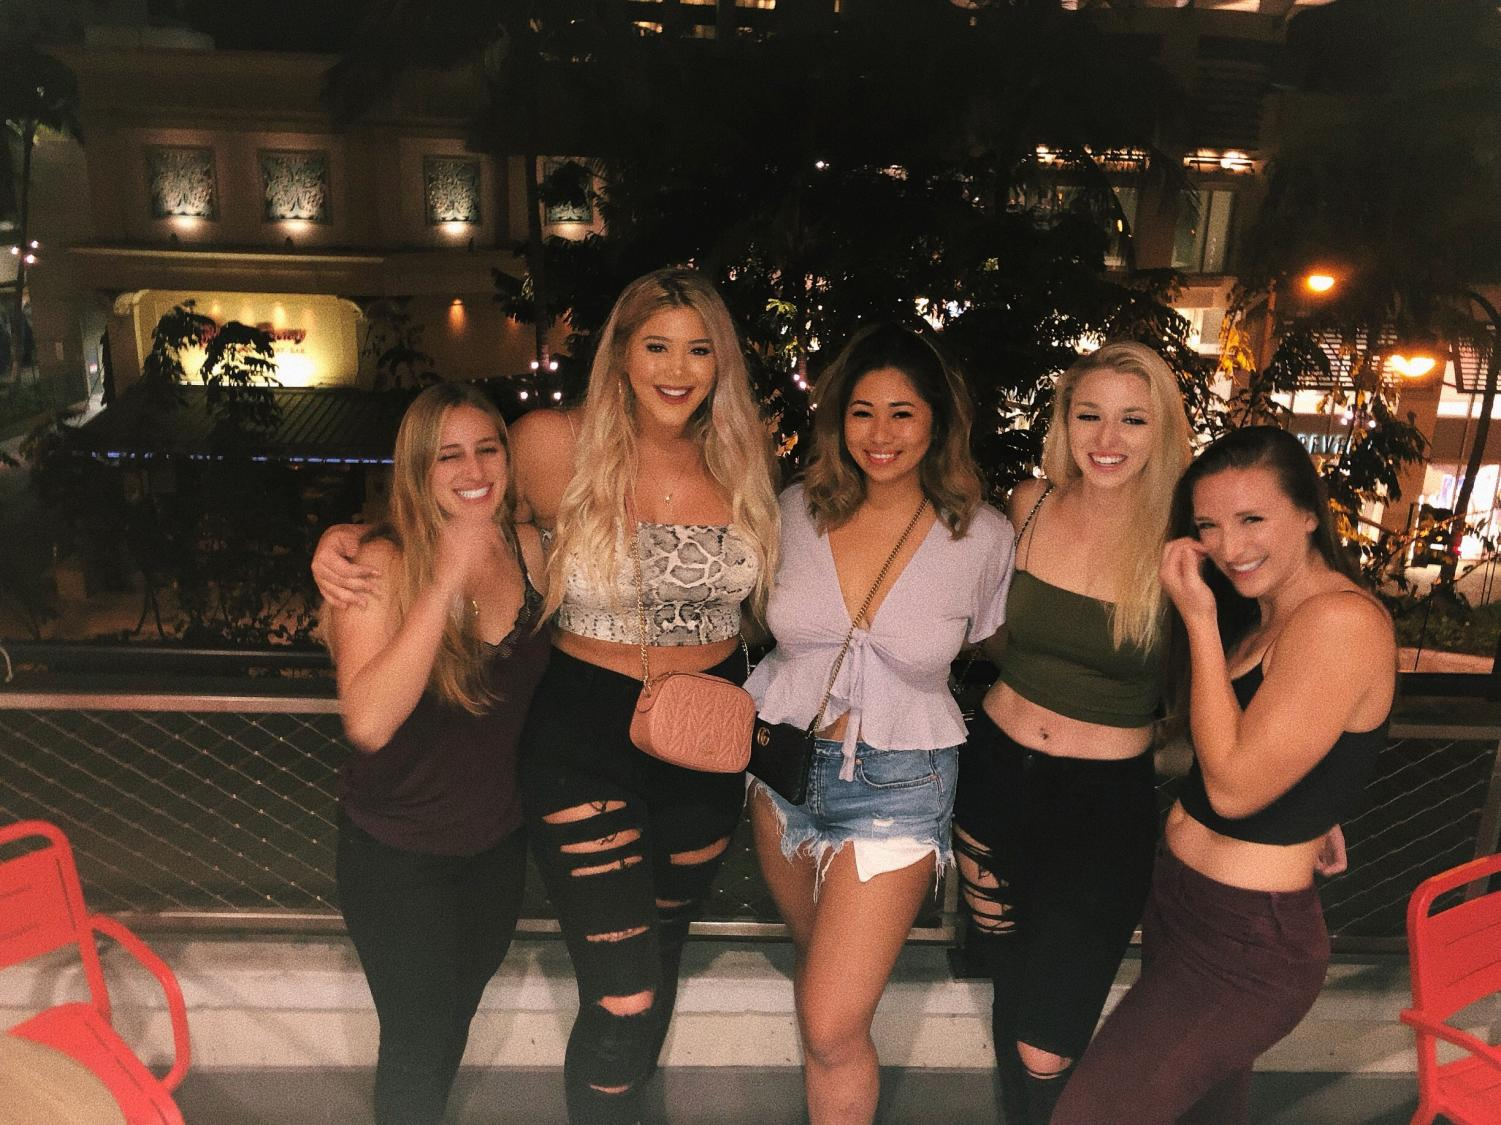 A group of college friends laughing after a night out on the town during spring break in Waikiki.